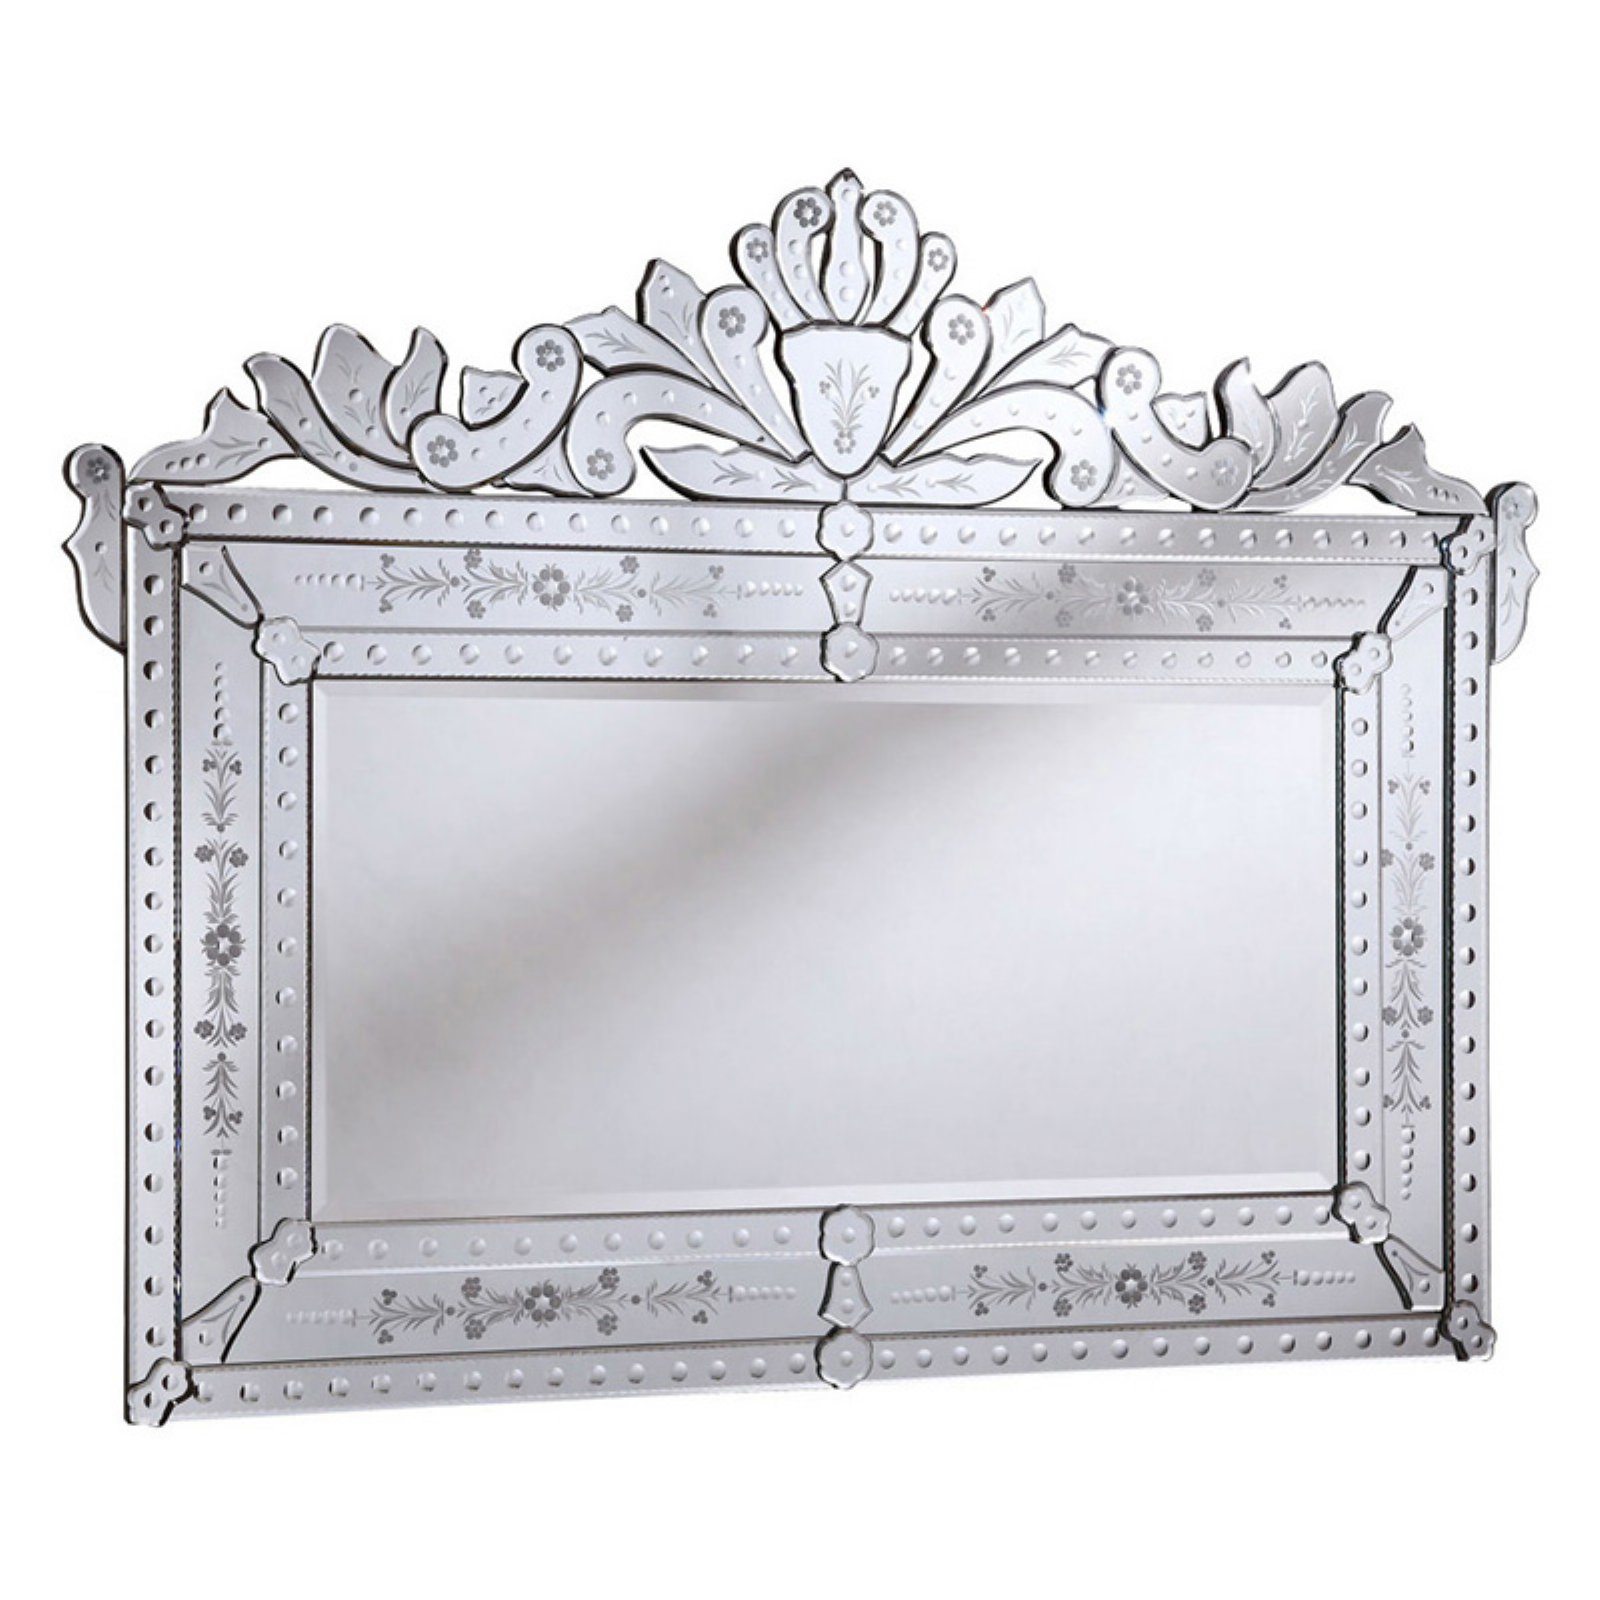 Elegant Furniture & Lighting Venetian Wall Mirror - 59W x 45H in.